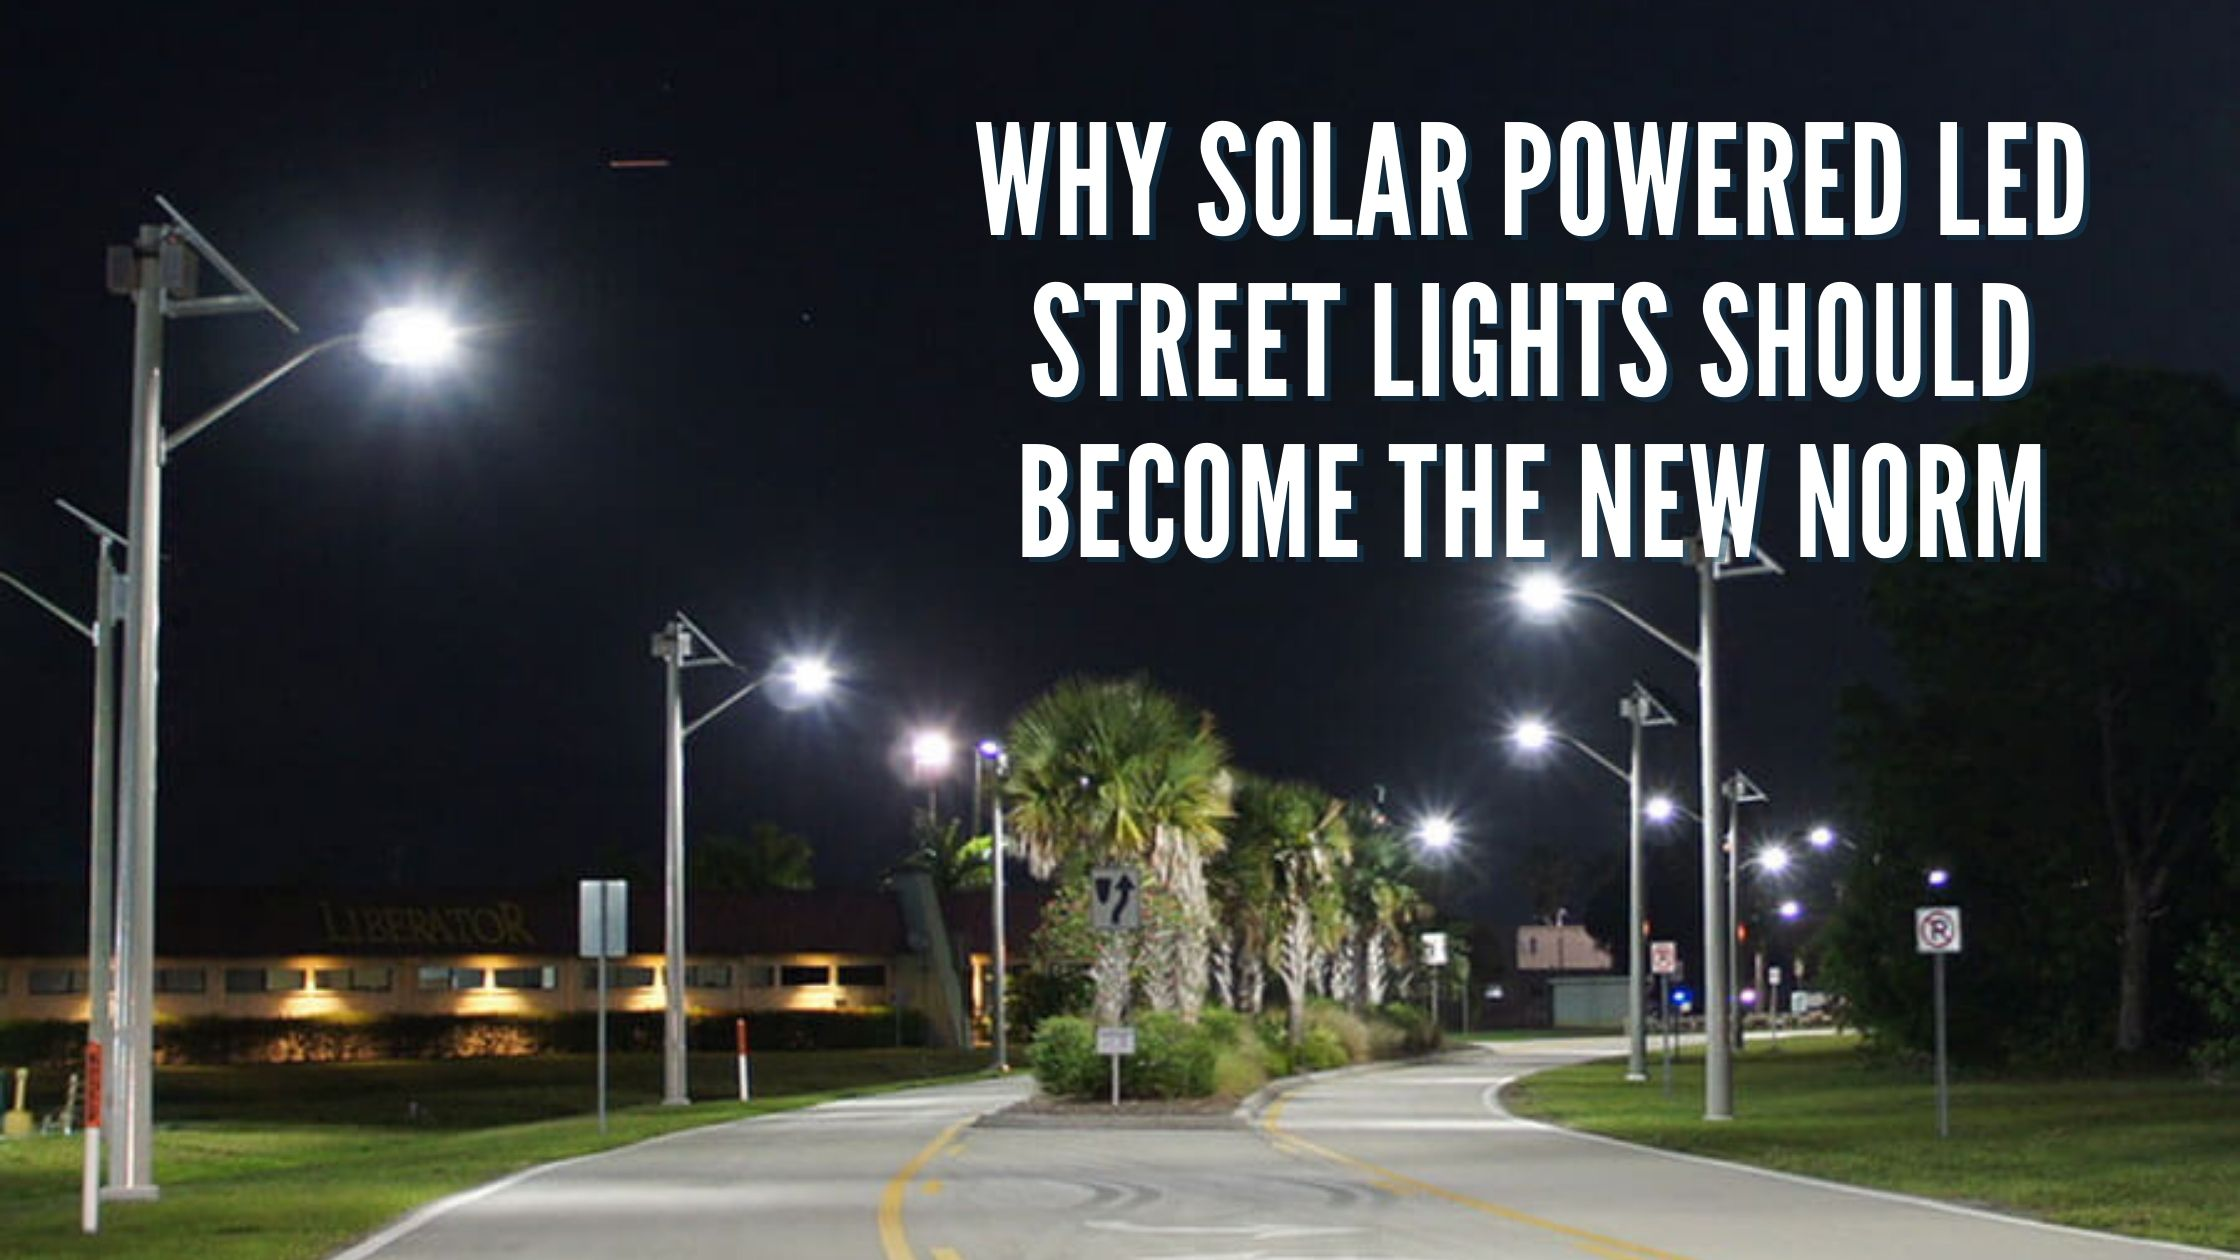 Why Solar Powered LED Street Lights Should Become the New Norm